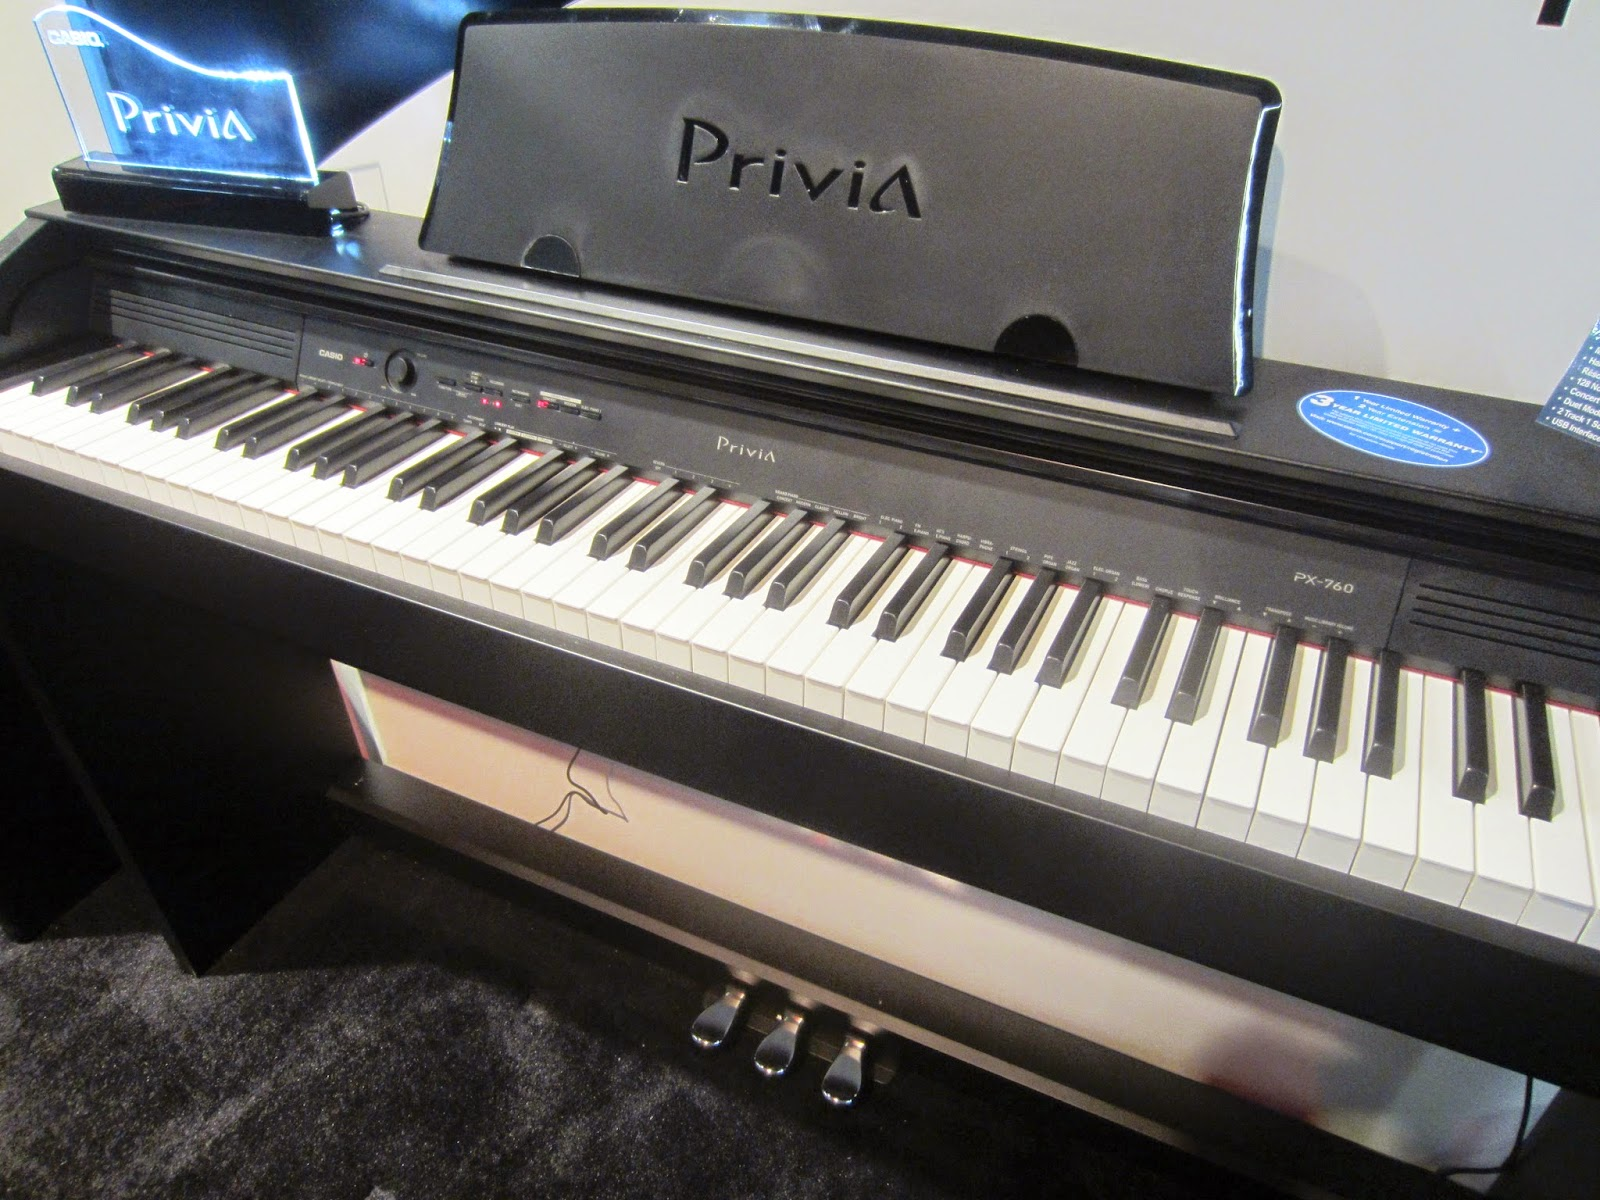 Digital Piano Keyboard Price : az piano reviews review casio px760 digital piano recommended low priced and high ~ Russianpoet.info Haus und Dekorationen